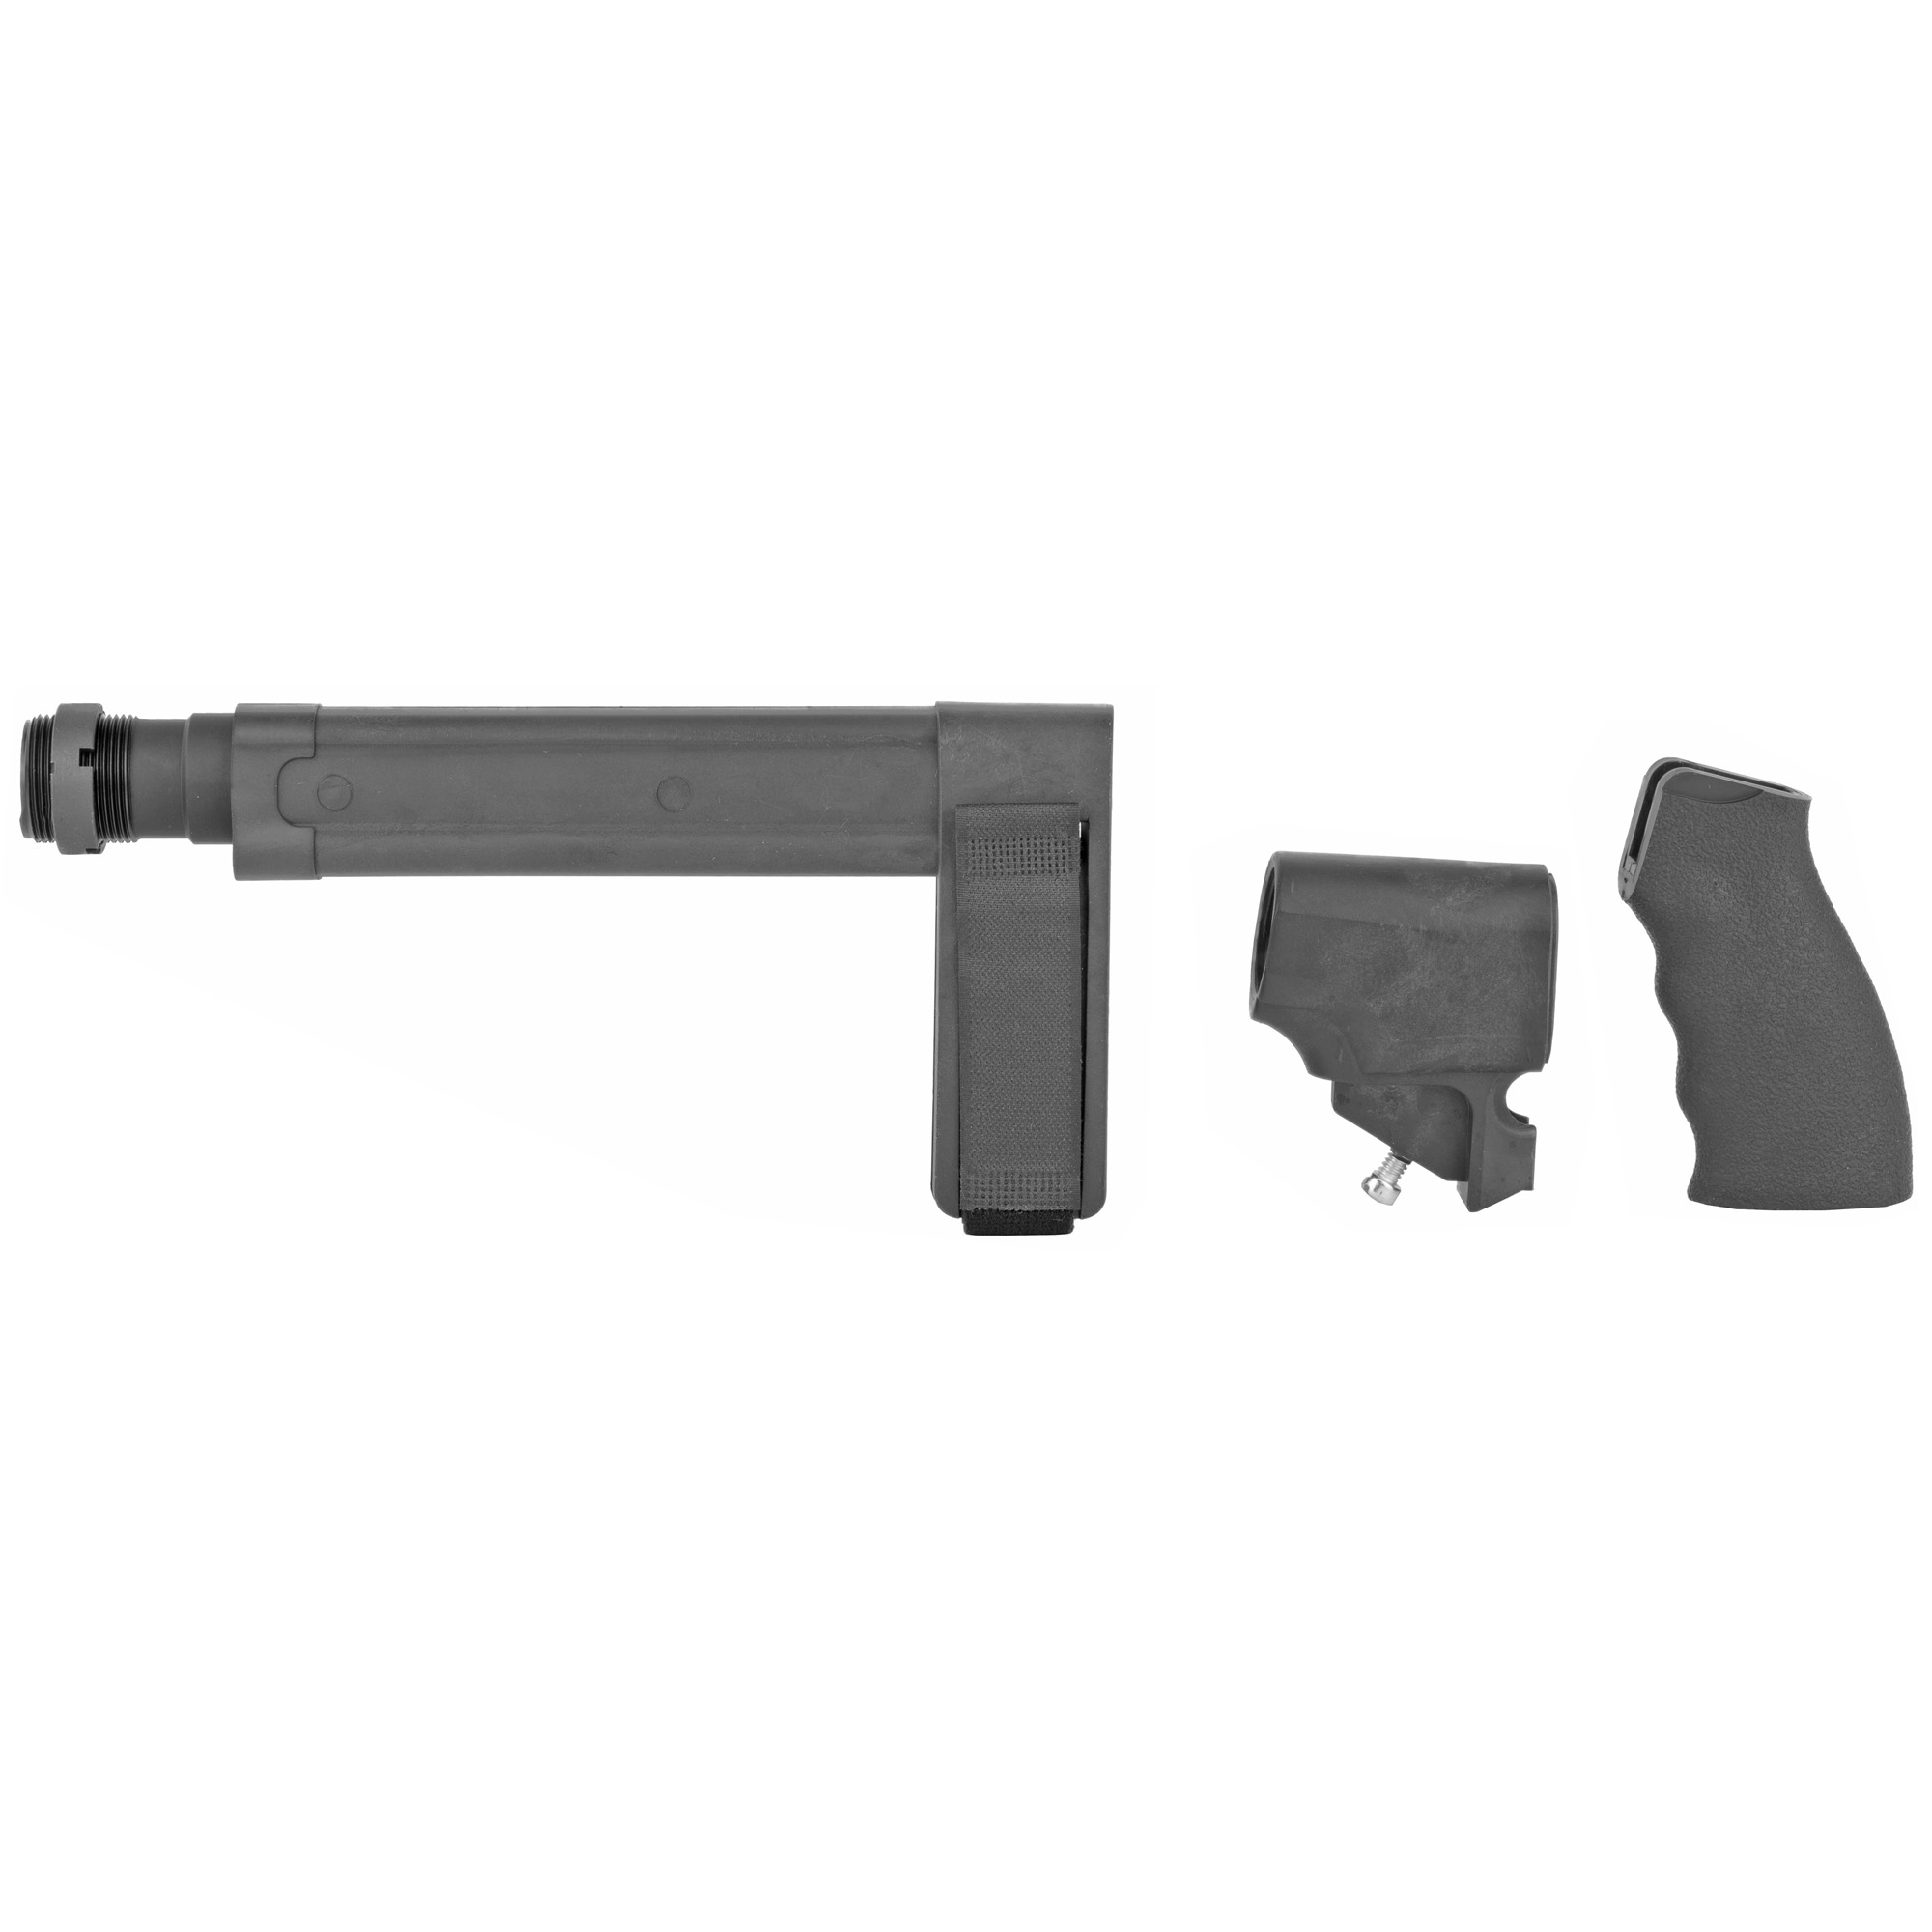 """This SB Tactical SBL Stabilizing Brace Kit for the Remington 870 TAC-14 is ready to assemble on your Remington 870 TAC-14. It will greatly enhance the usability of the firearm by adding a third point of contact for stabilization. Kit includes: SBL Pistol Stabilizing Brace STDT pistol receiver extension ERGO Flat Top SUREGRIP ERGO Remington 870 adapter castle nut and adjustable nylon strap (1.60"""" wide)."""